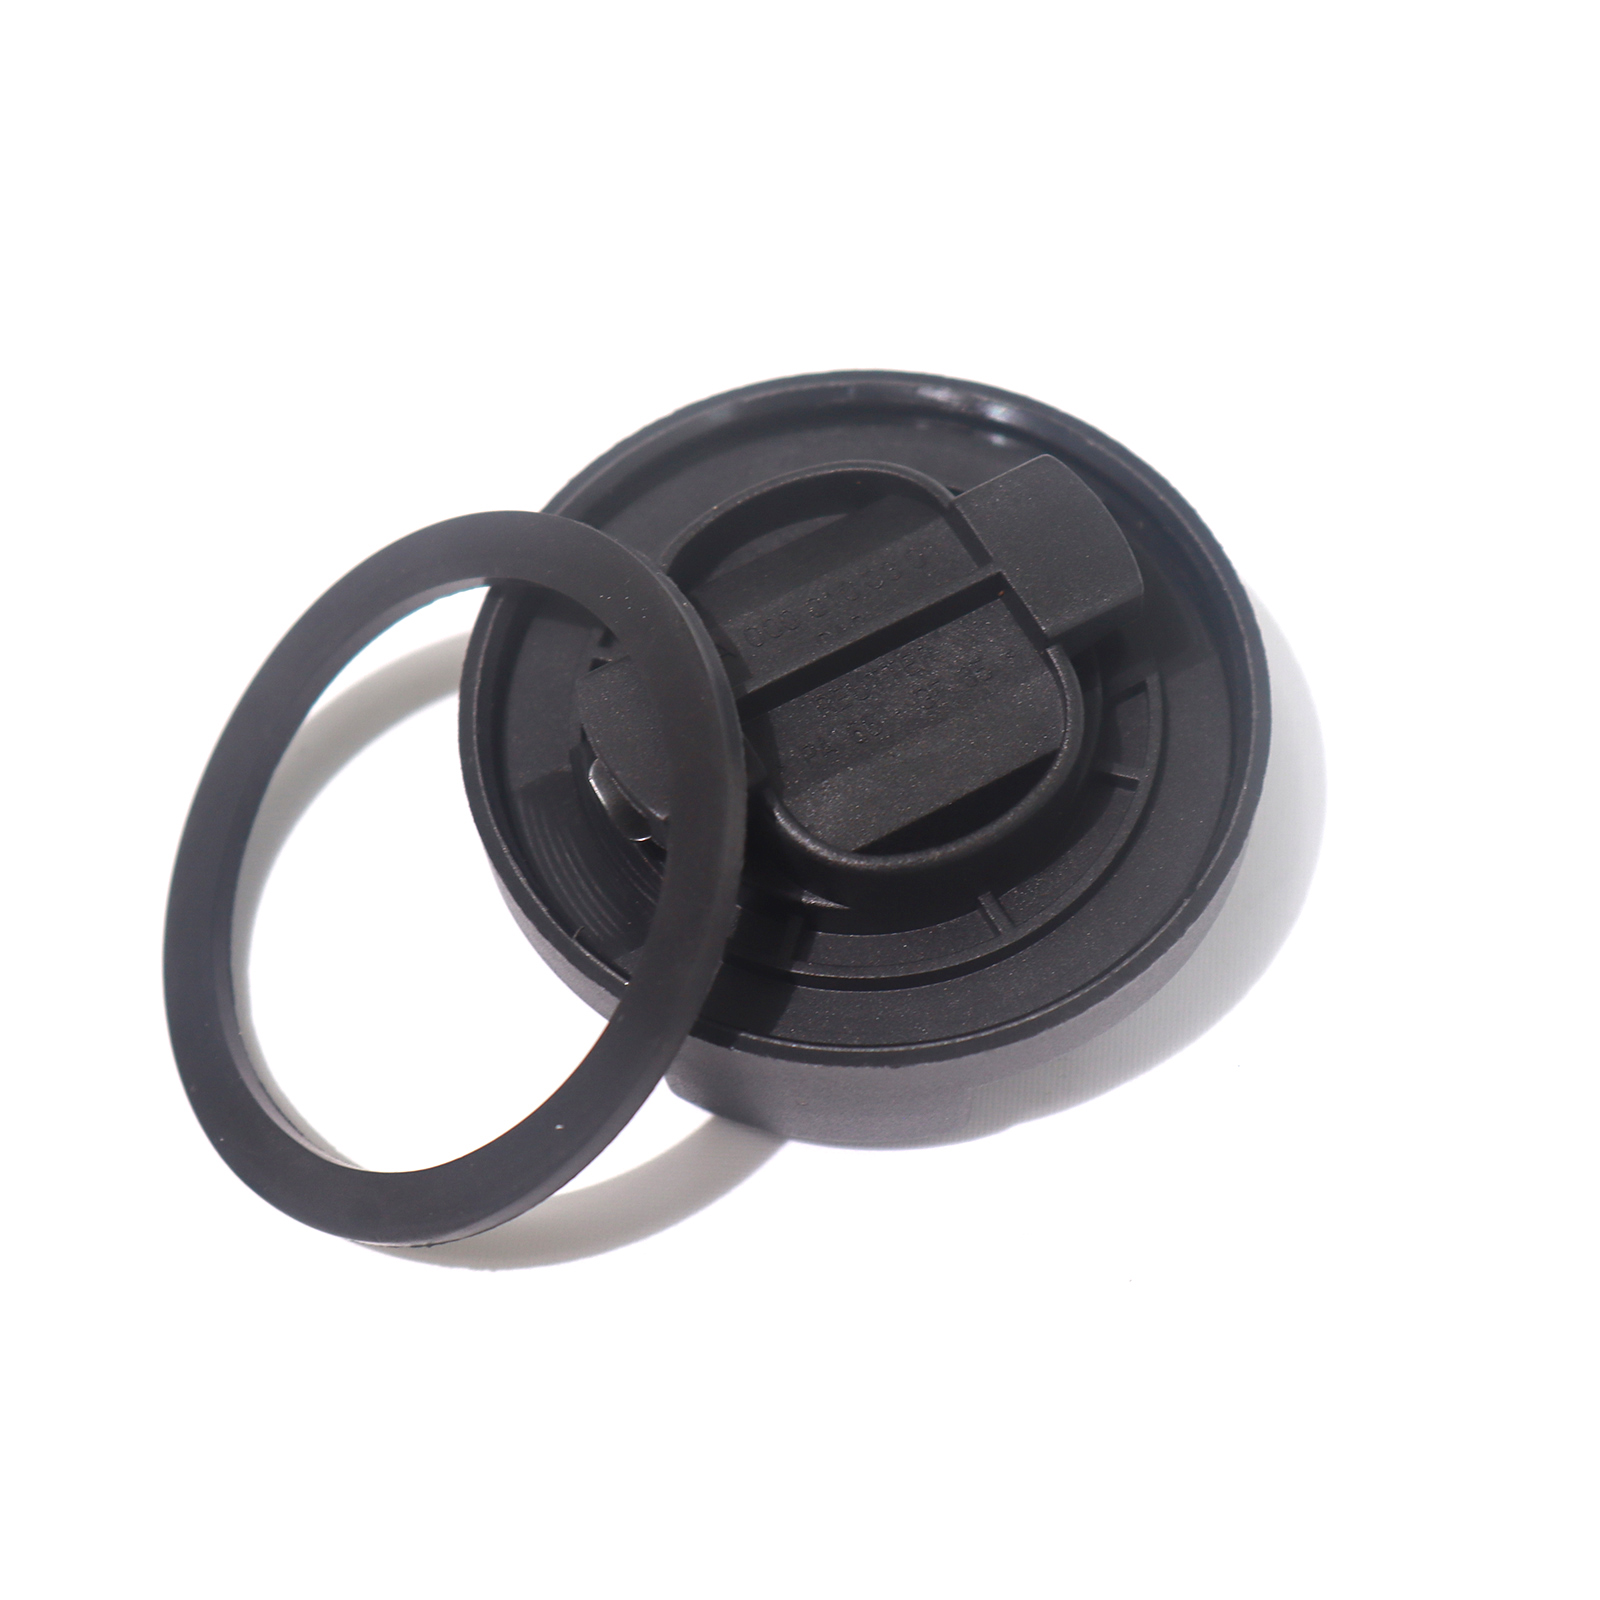 Engine Oil Filter Cap Cover 0000100301 A0000100301 for Mercedes Benz W220